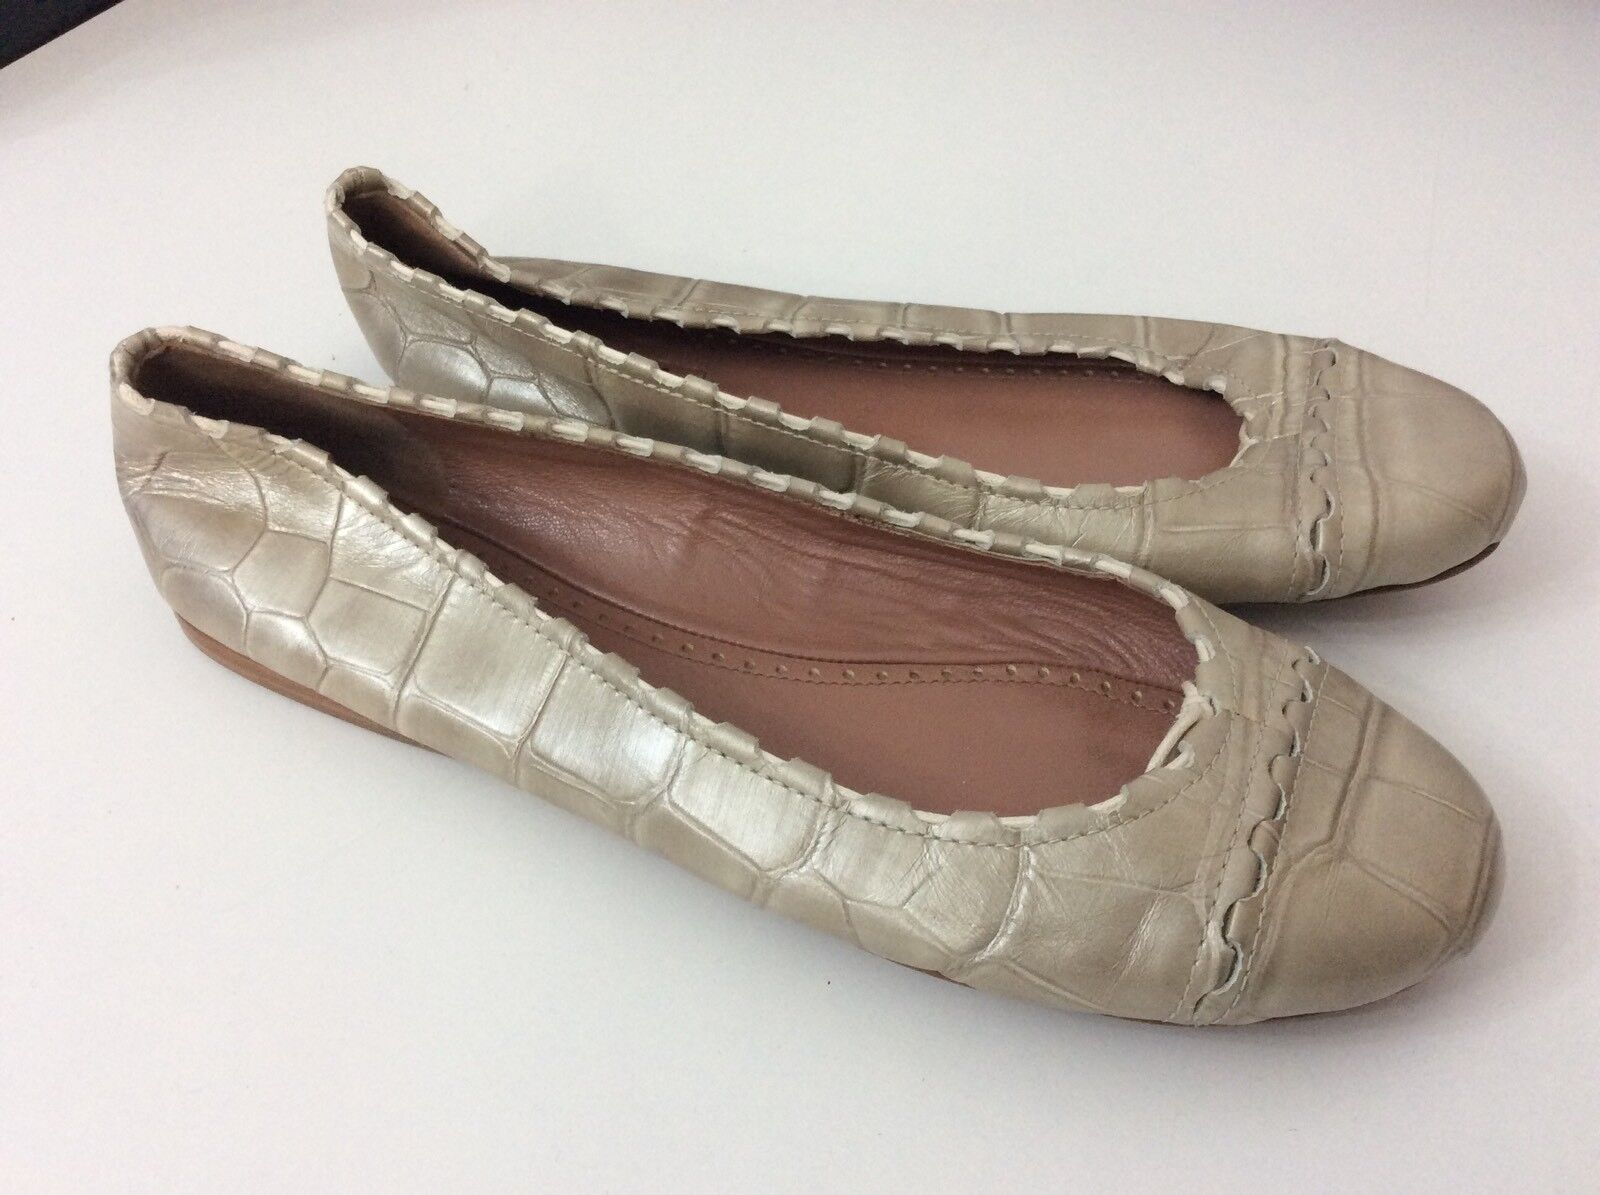 ALAIA Schuhes Paris new Ballerinas Schuhes ALAIA Flats Gold Metallic Bnwob Größe 37 Uk 4 Rrp bd7e39